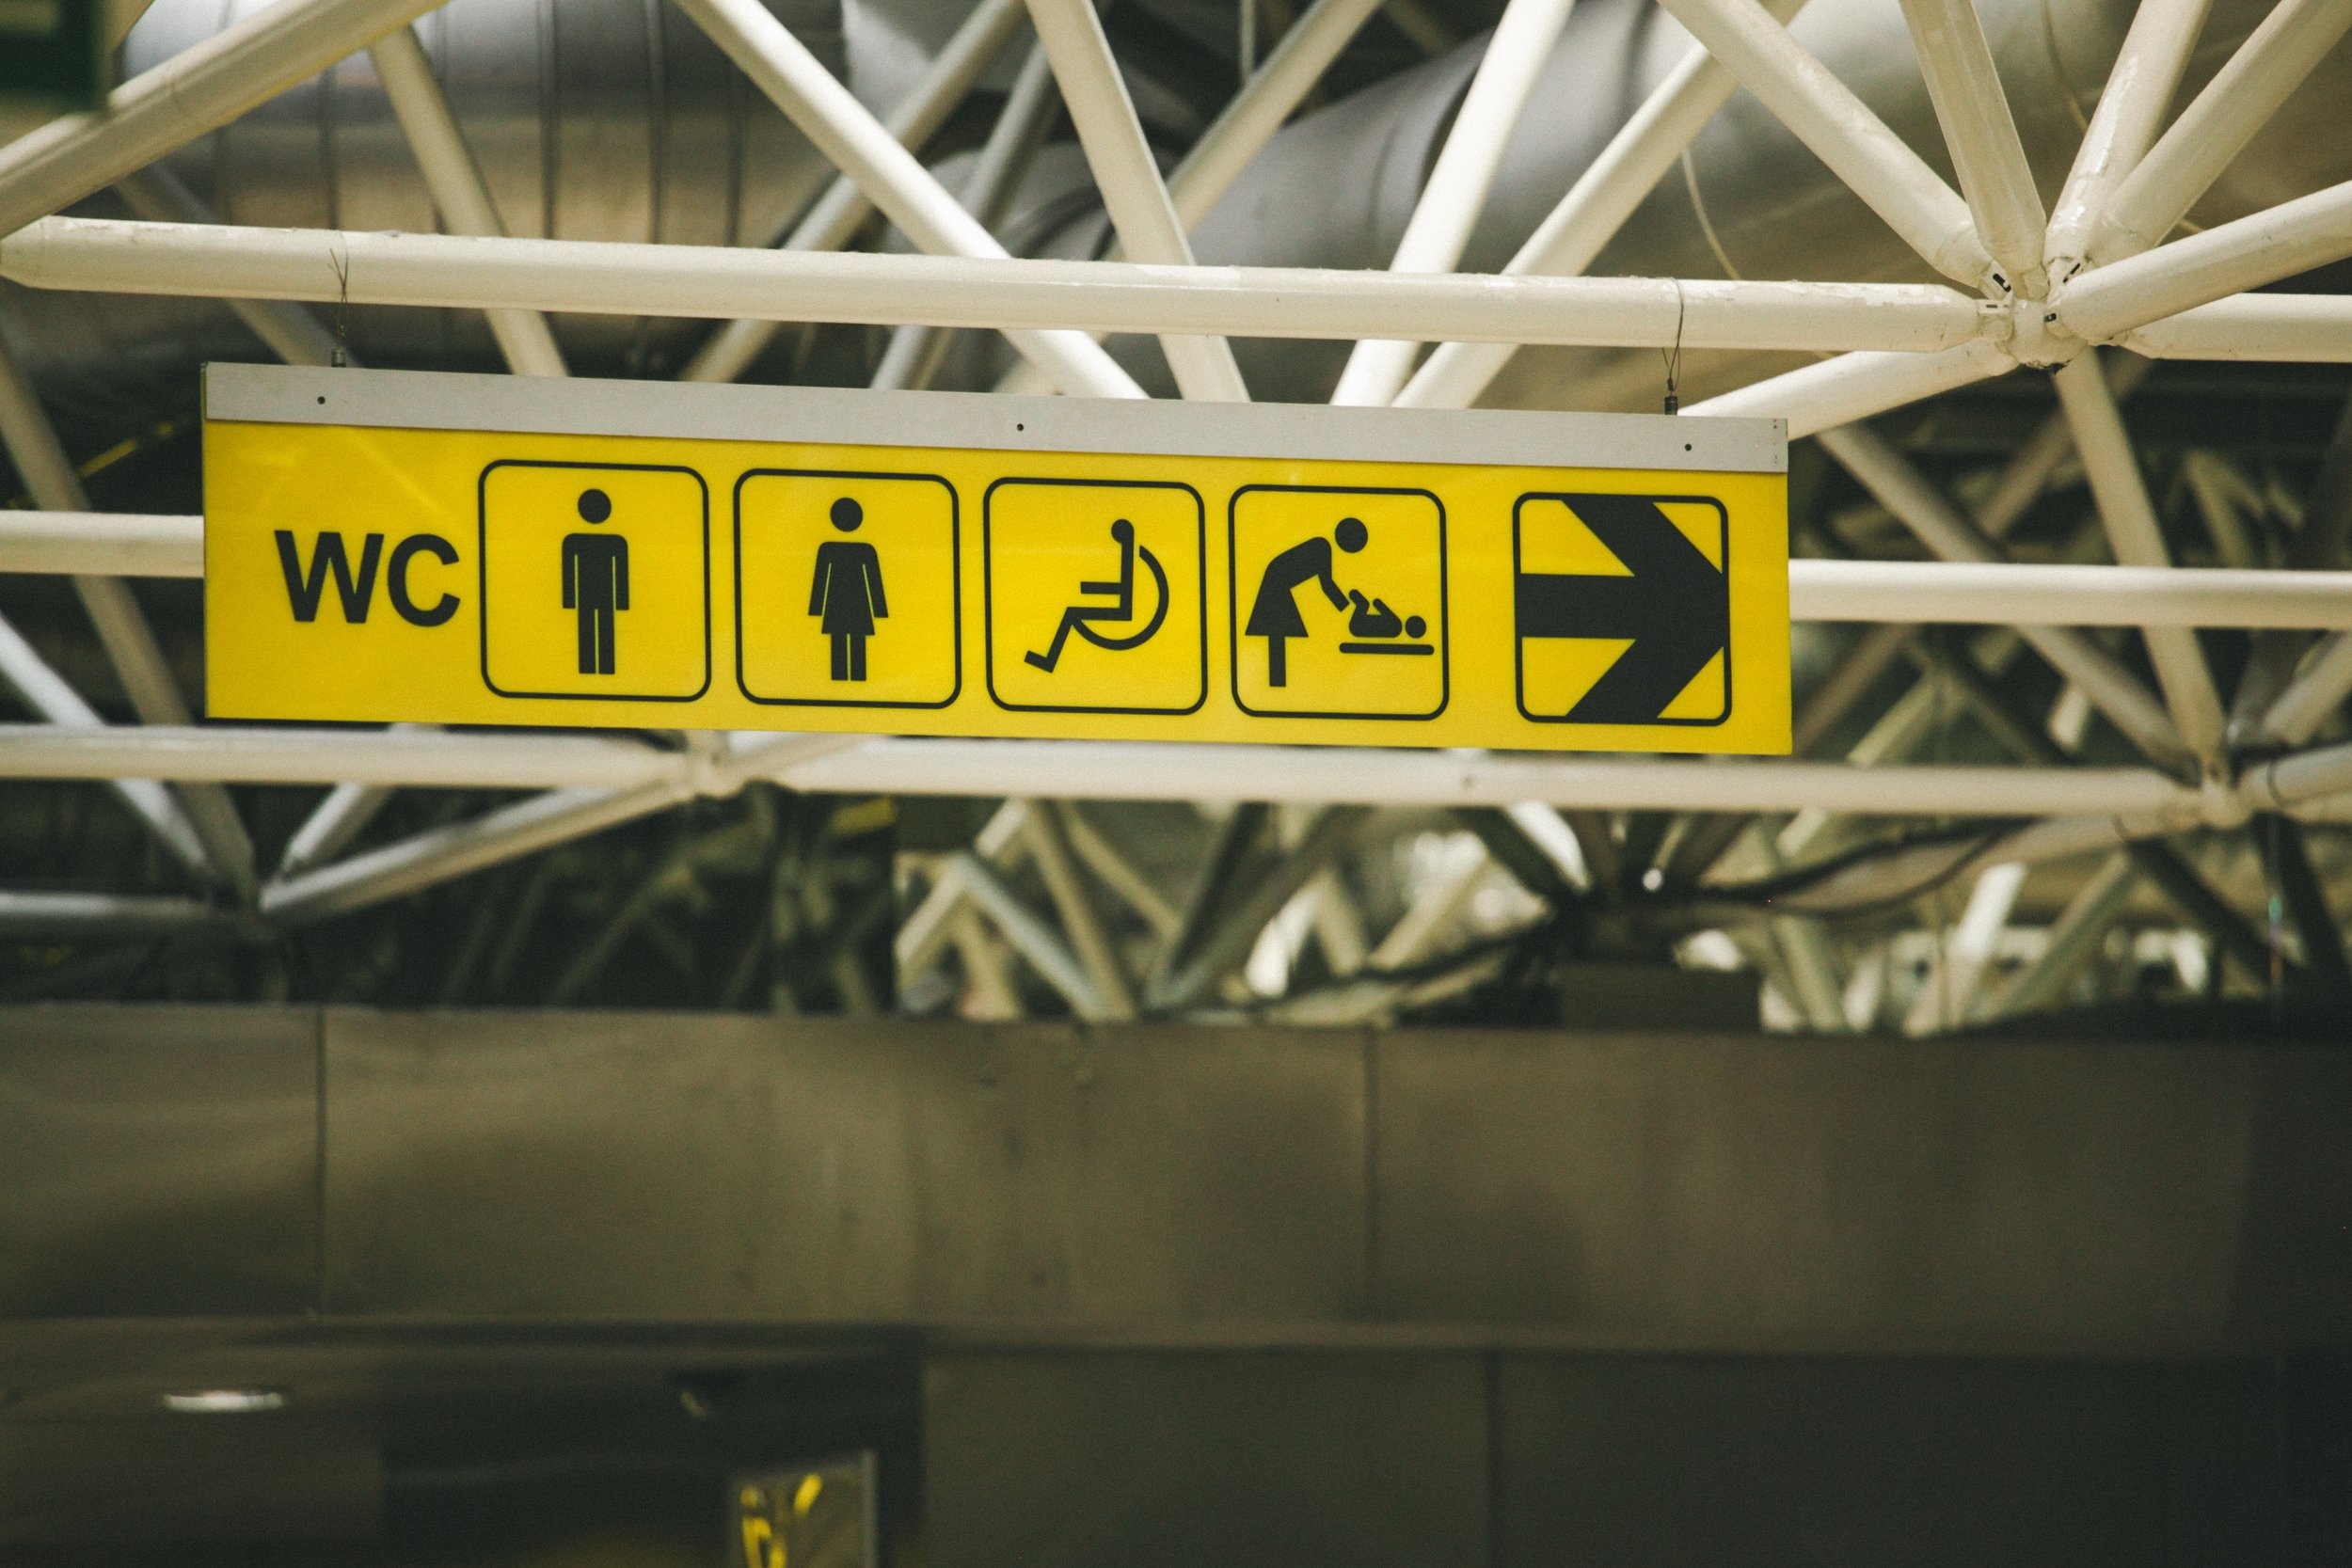 Accessibility Standards - A majority of the WCAG 2.0 standards have been met.